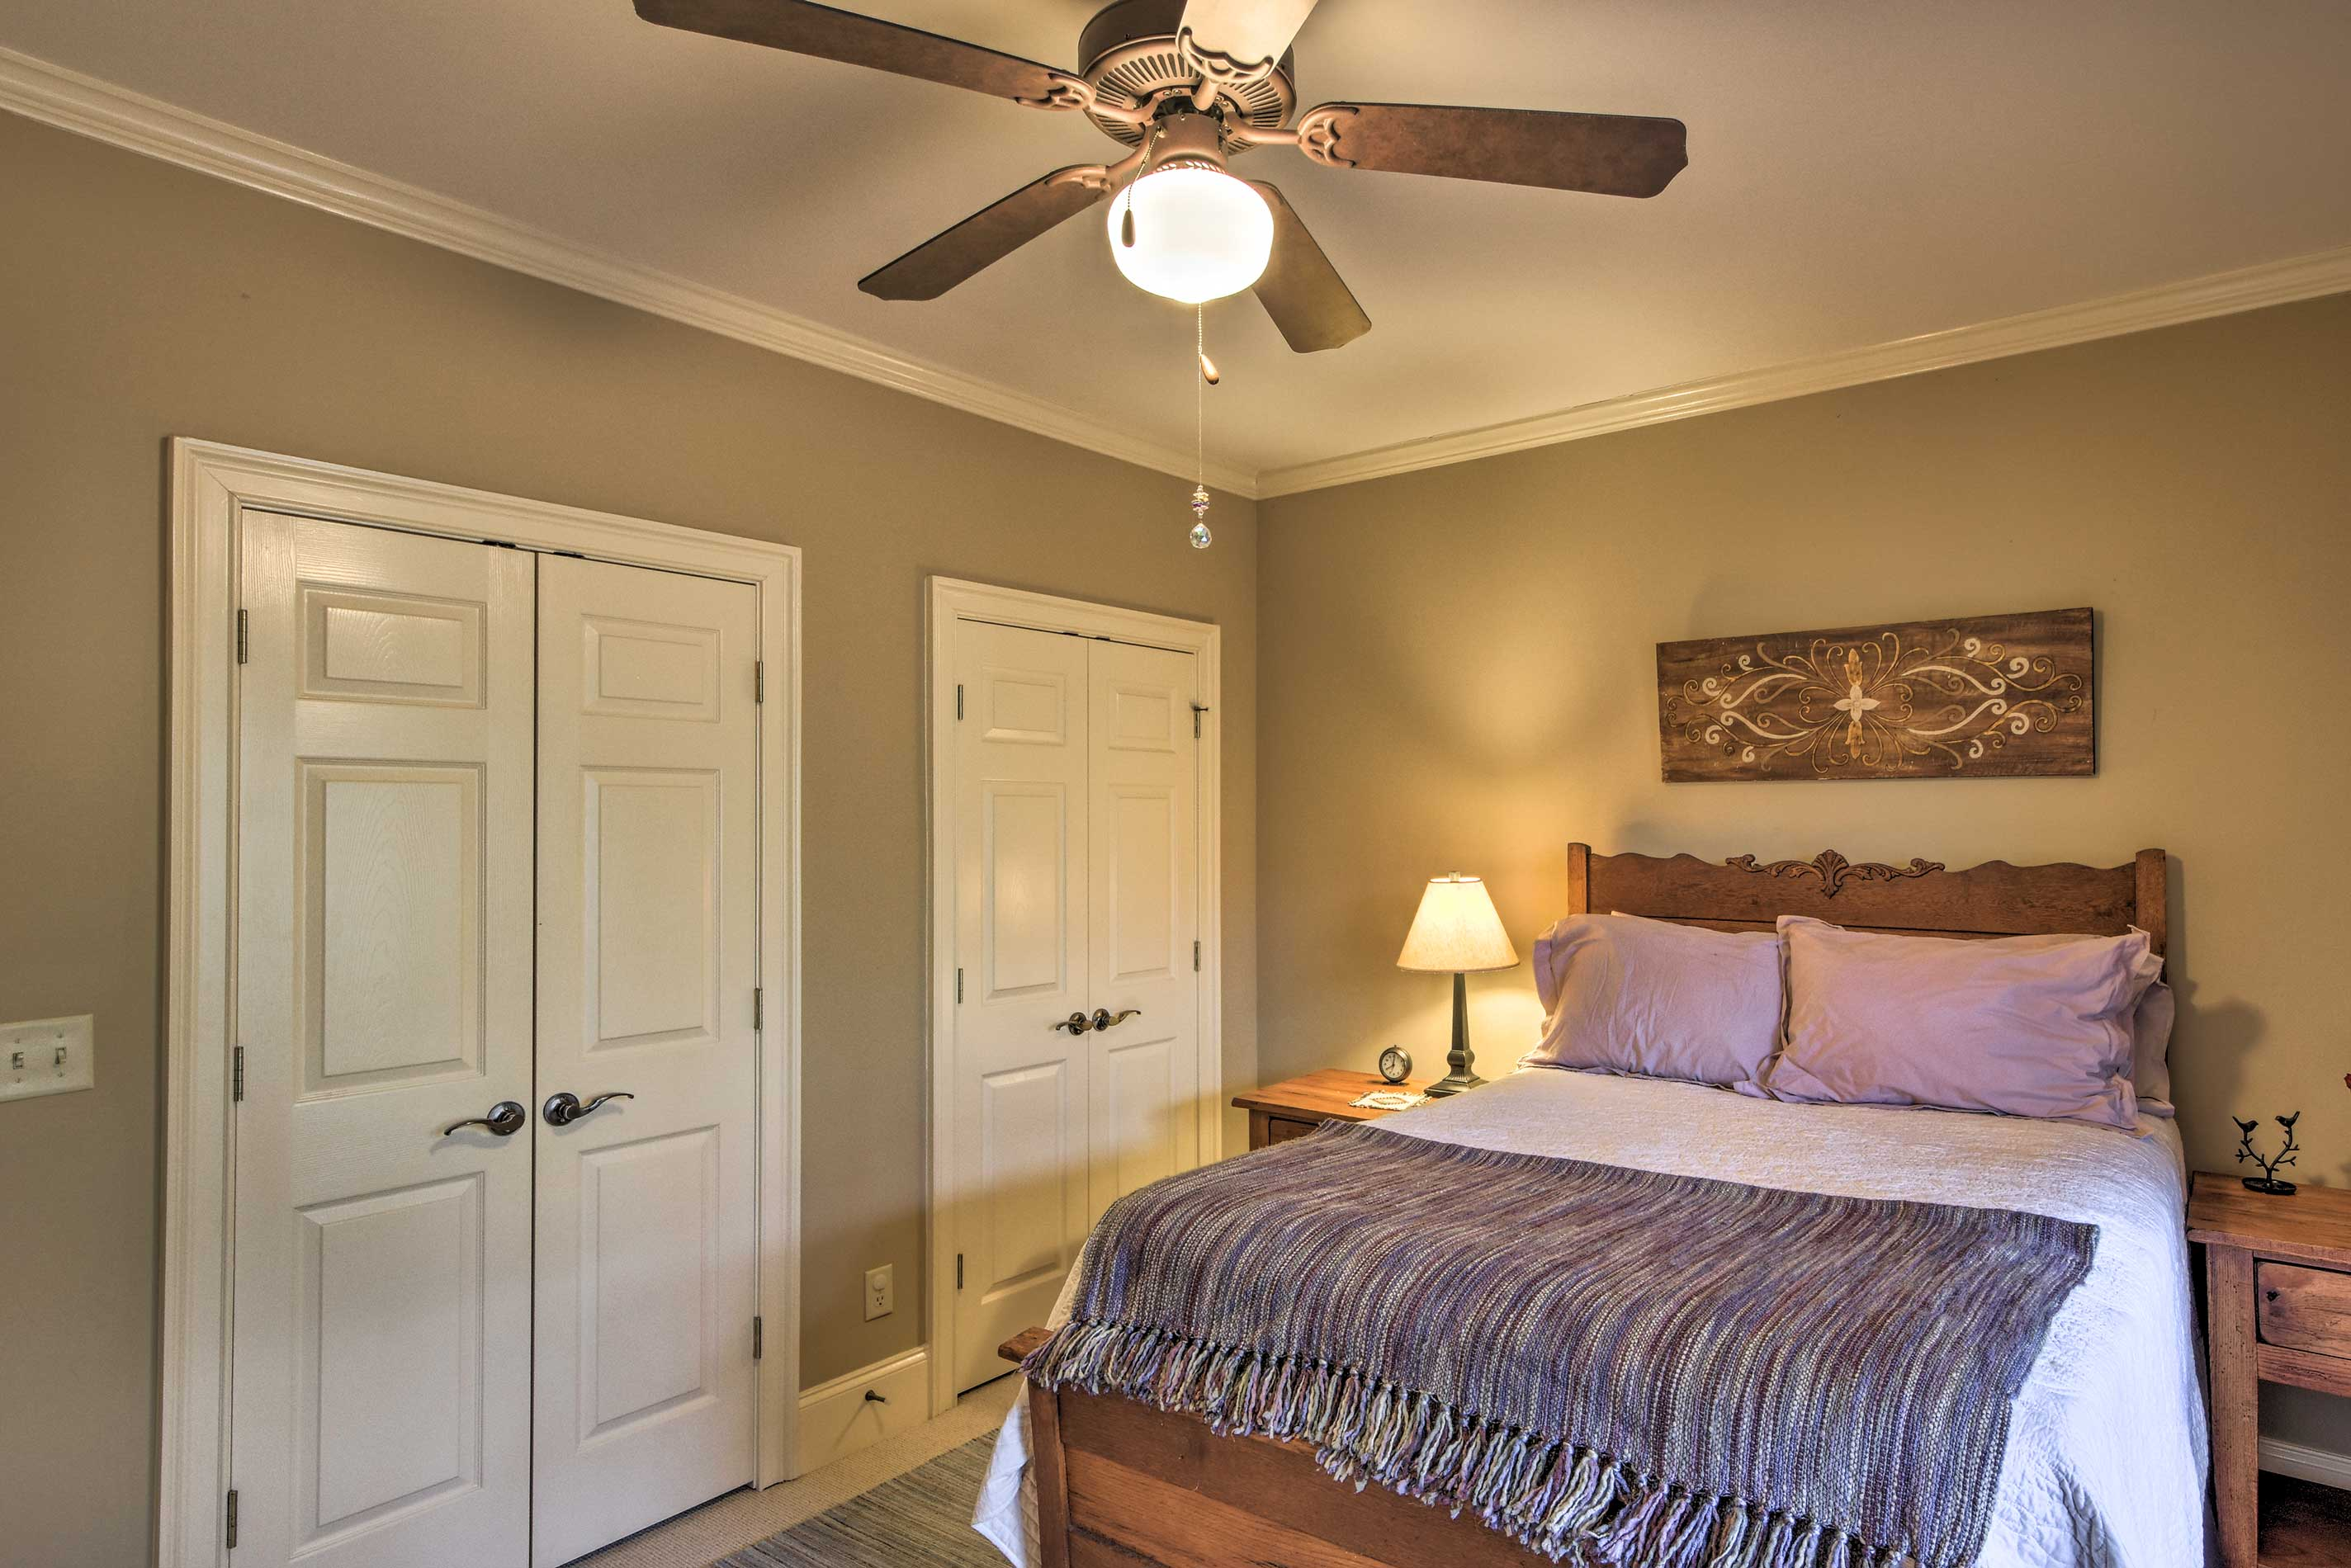 There's ample storage space throughout the home.